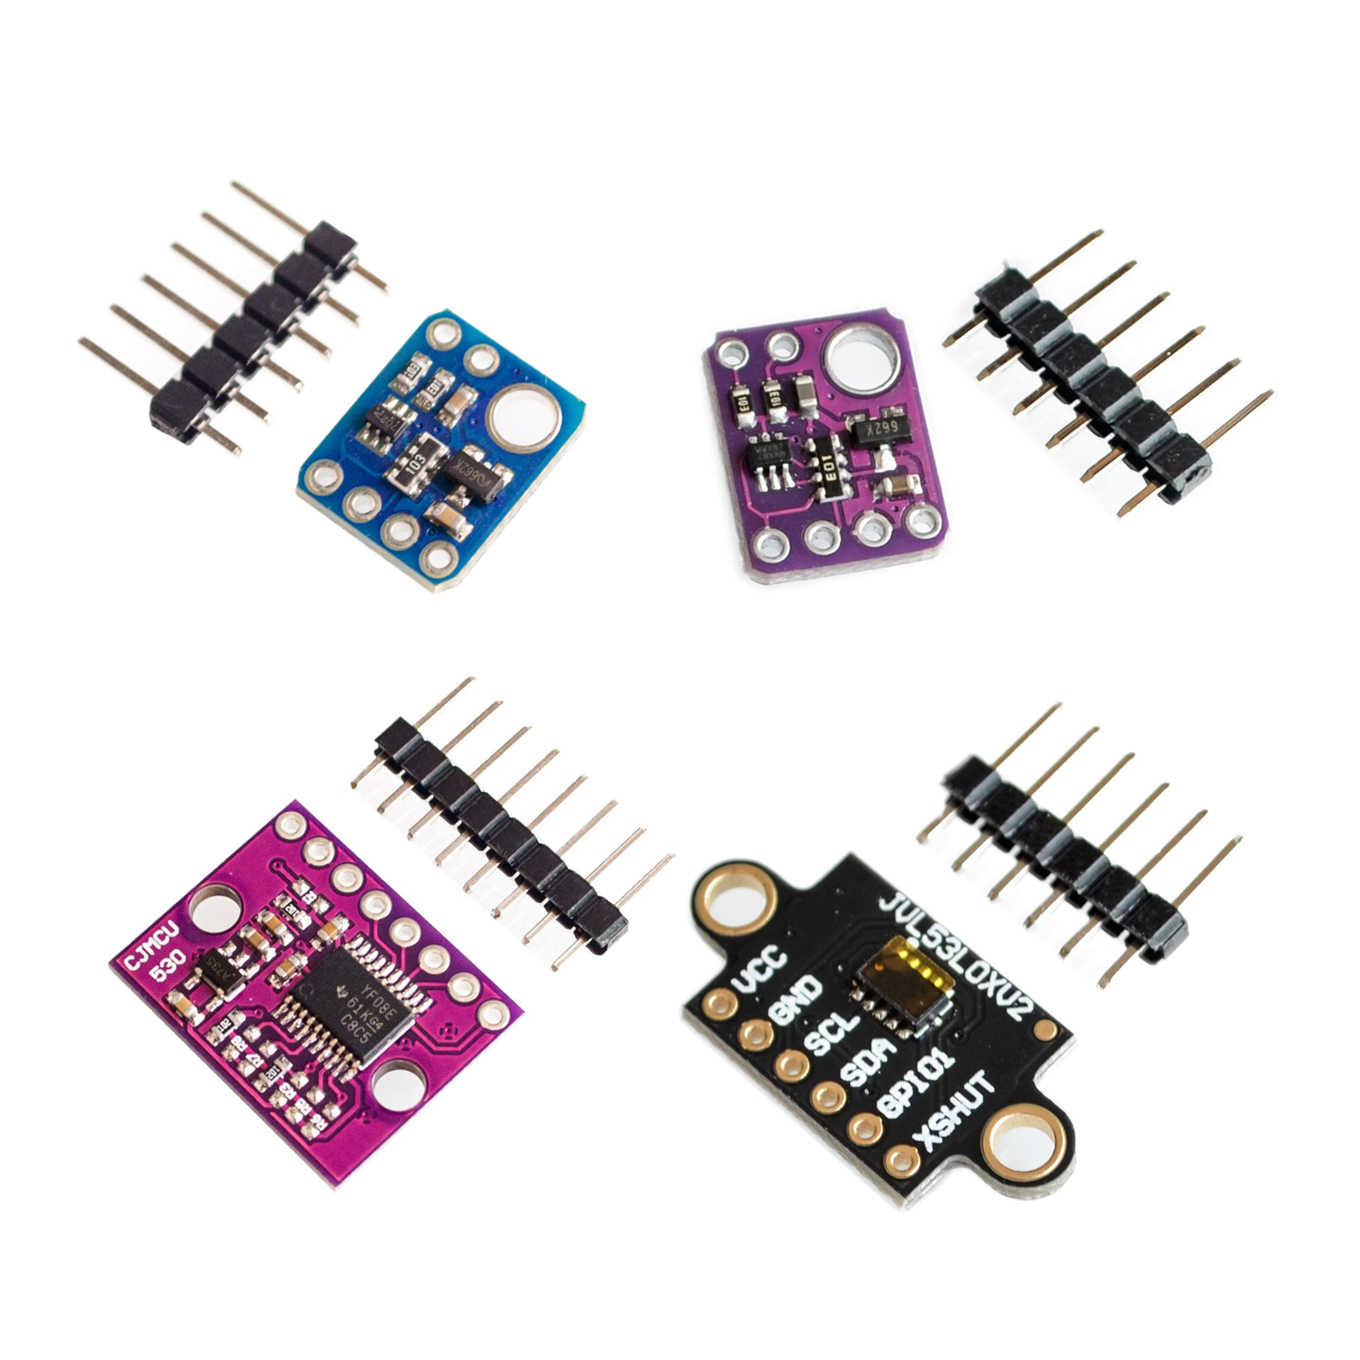 1pcs GY-530 Original VL53L0X World smallest Time-o f-Flight (ToF) laser ranging sensor 2.8 - 5V IIC Communication For Arduino